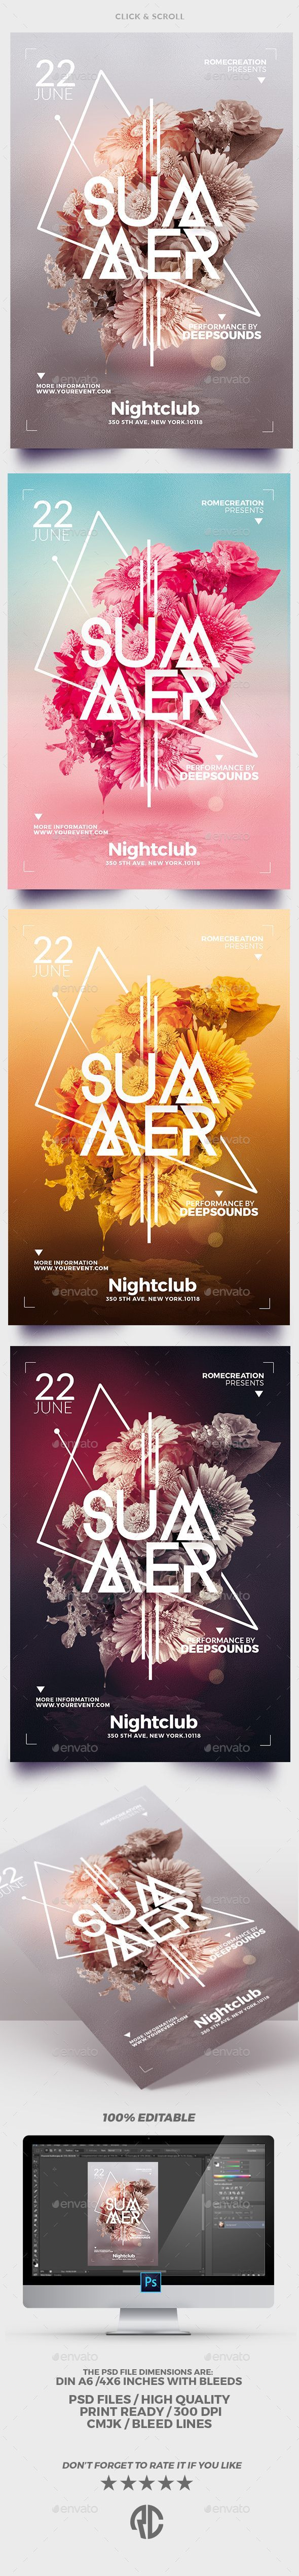 Minimalst #Summer | #Flyer Templates - Events Flyers Download here: https://graphicriver.net/item/minimalst-summer-flyer-templates/19749219?ref=alena994